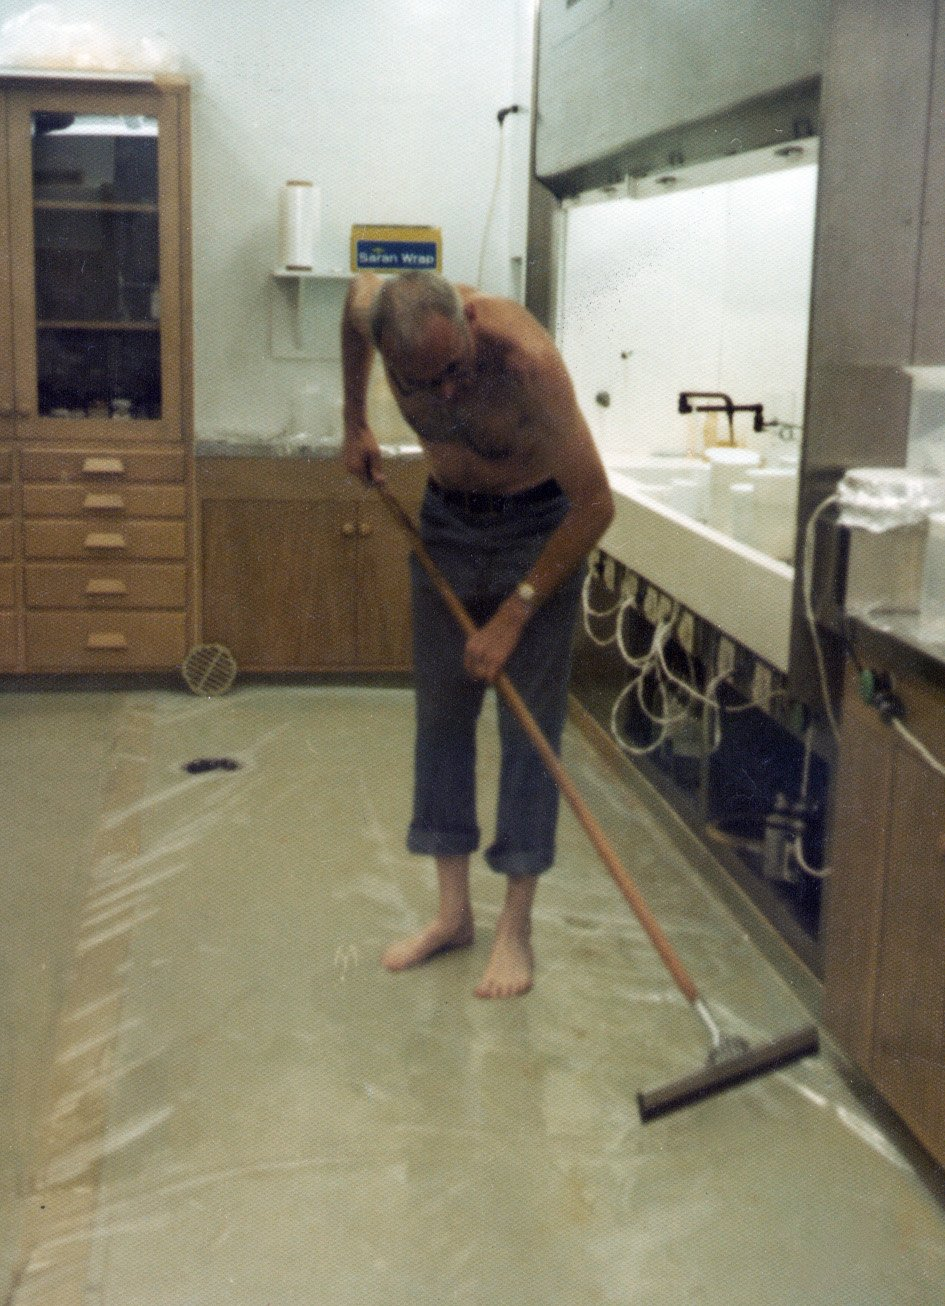 Clair Patterson went to great lengths to keep lead and other contaminants out of his laboratory. Photo courtesy of the Archives, California Institute of Technology.